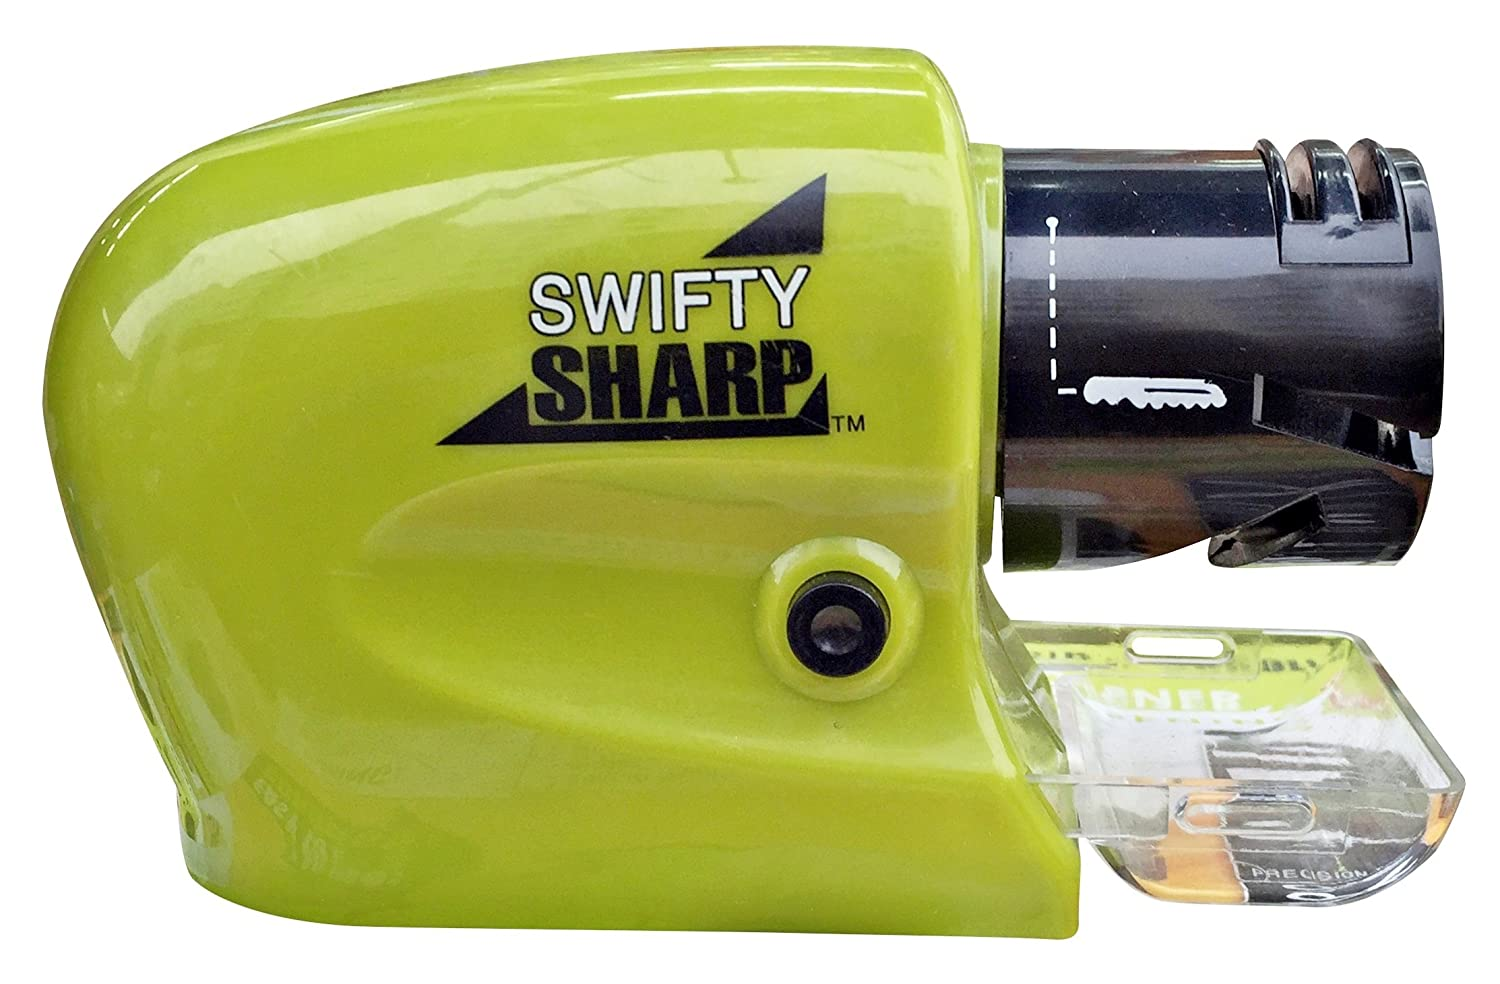 Swifty Sharp Kitchen Knife Sharpeners Knives Home Electric Motorized ...